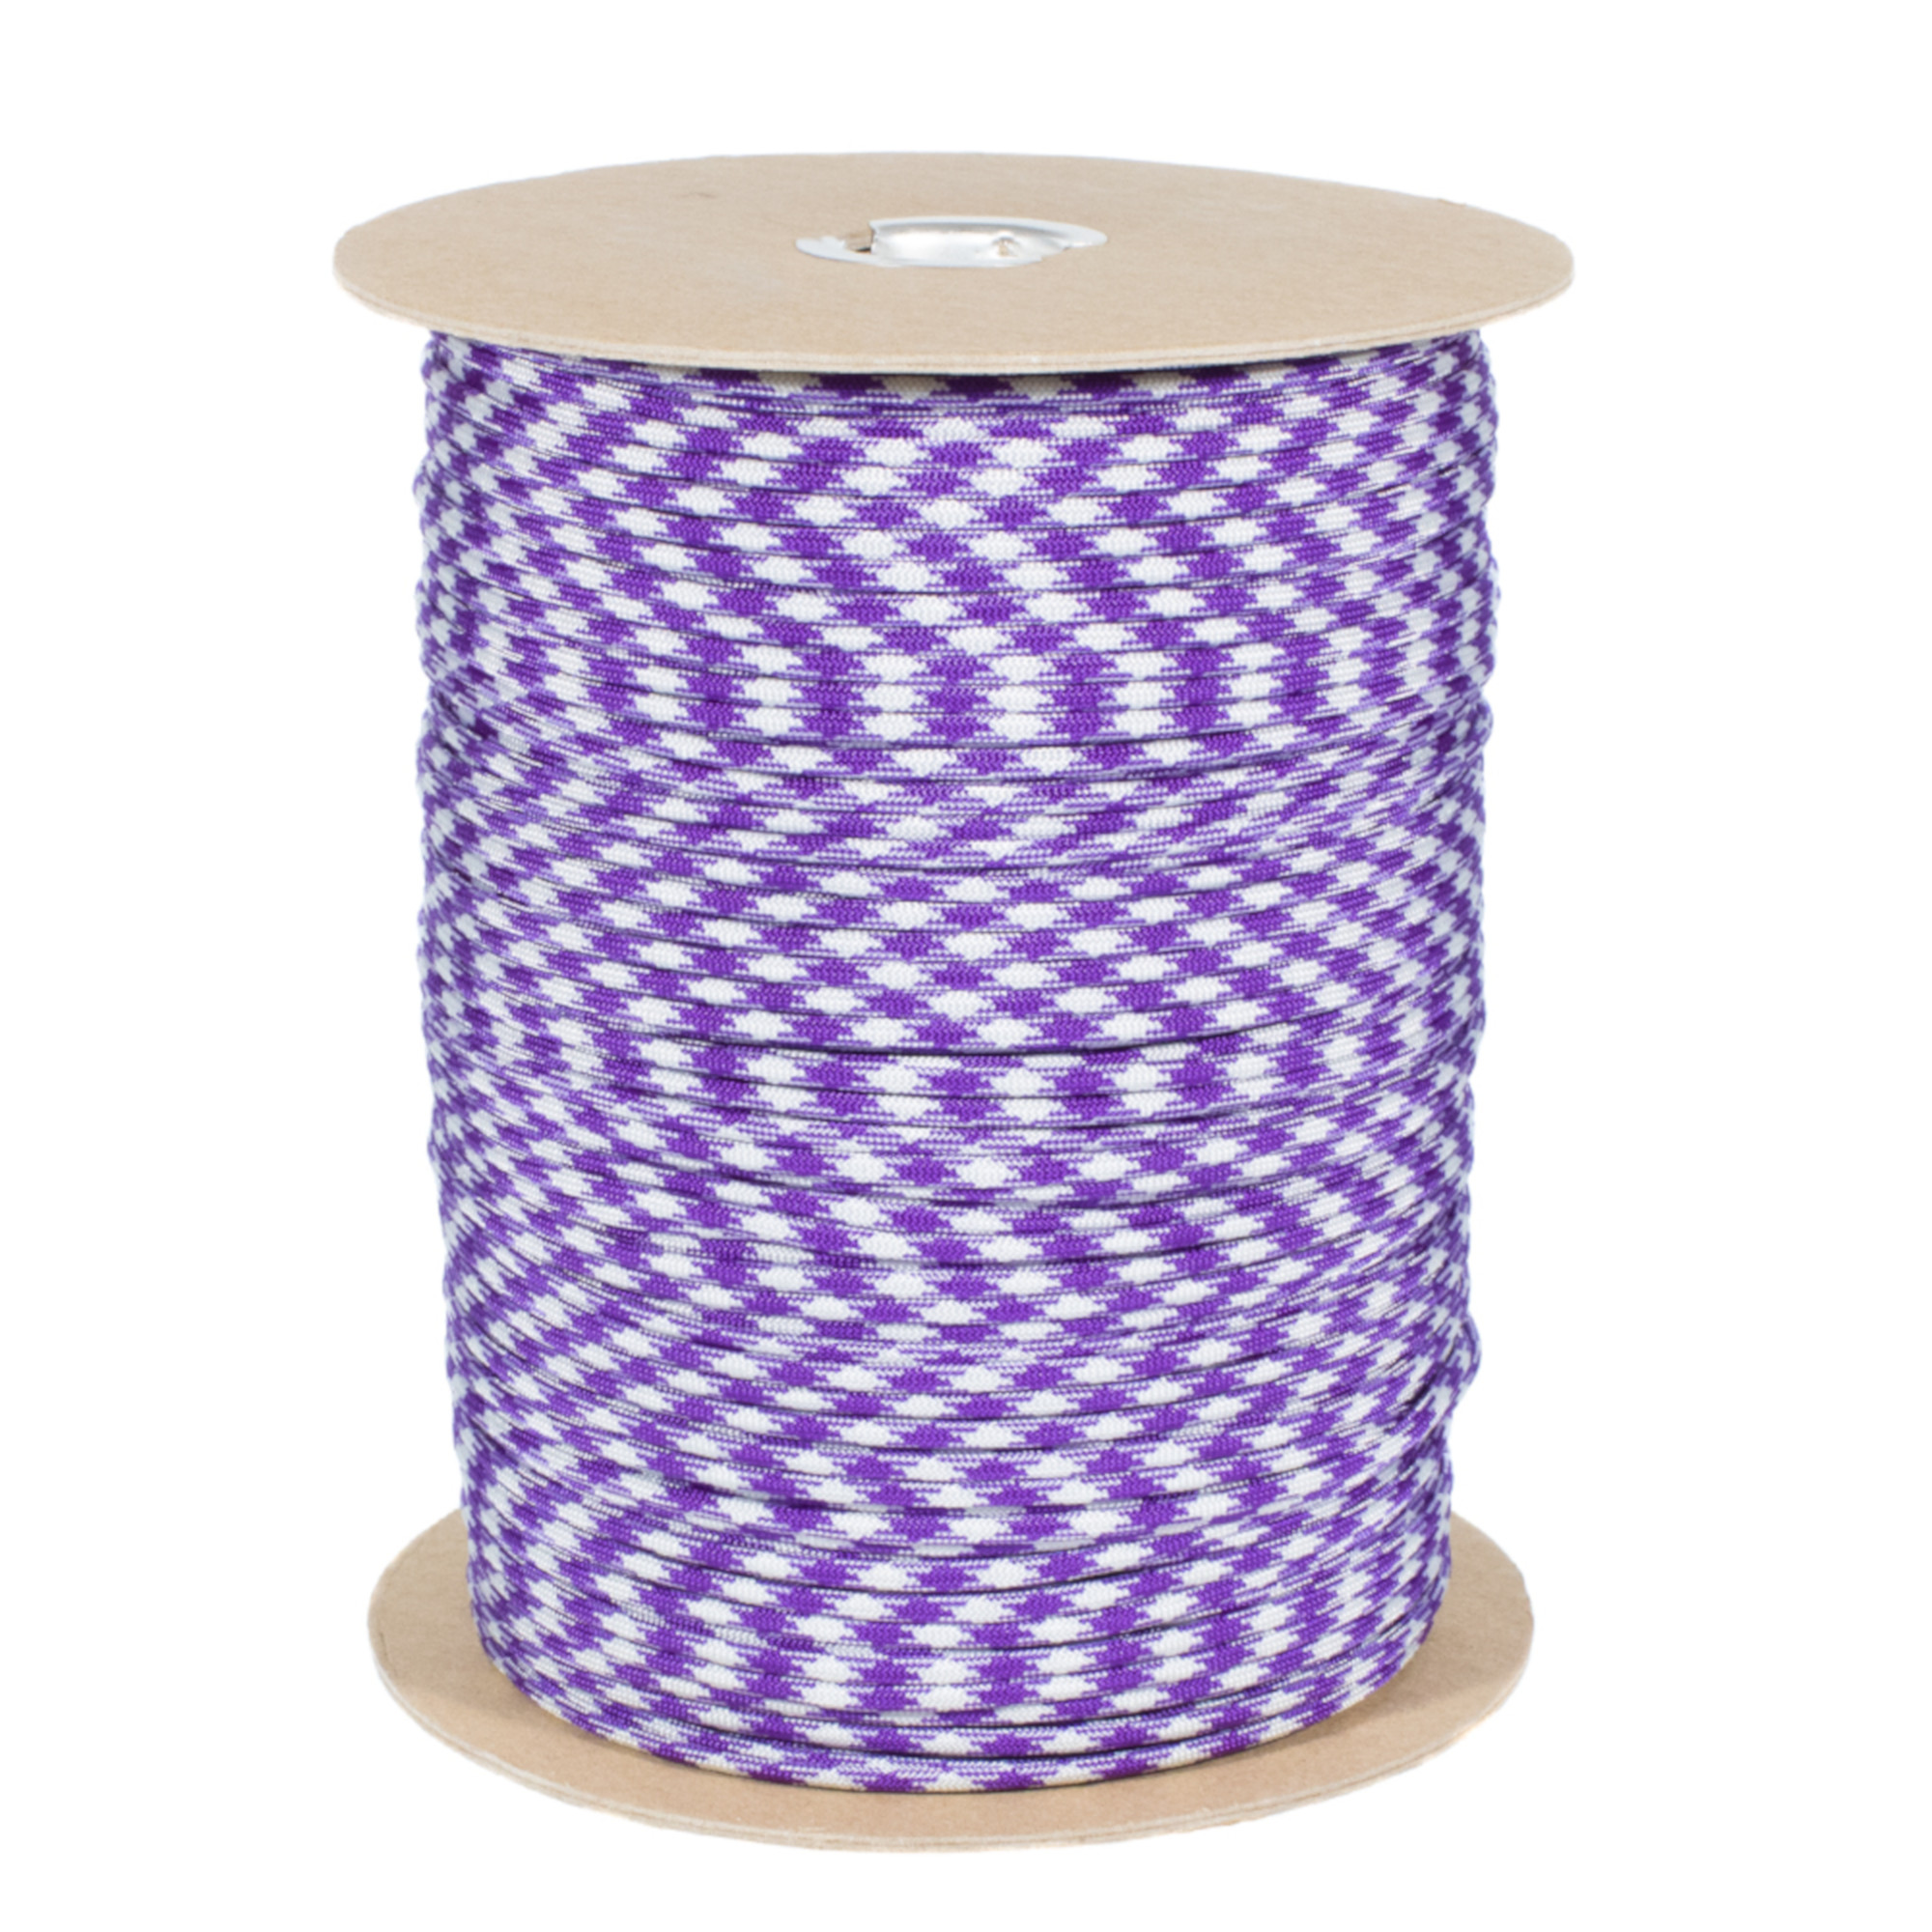 Paracord Planet 550 LB Type III 7 Strand 4mm Tactical Cord with Choices of 10, 20, 25, 50, 100, 250 & 1000 Foot Spools